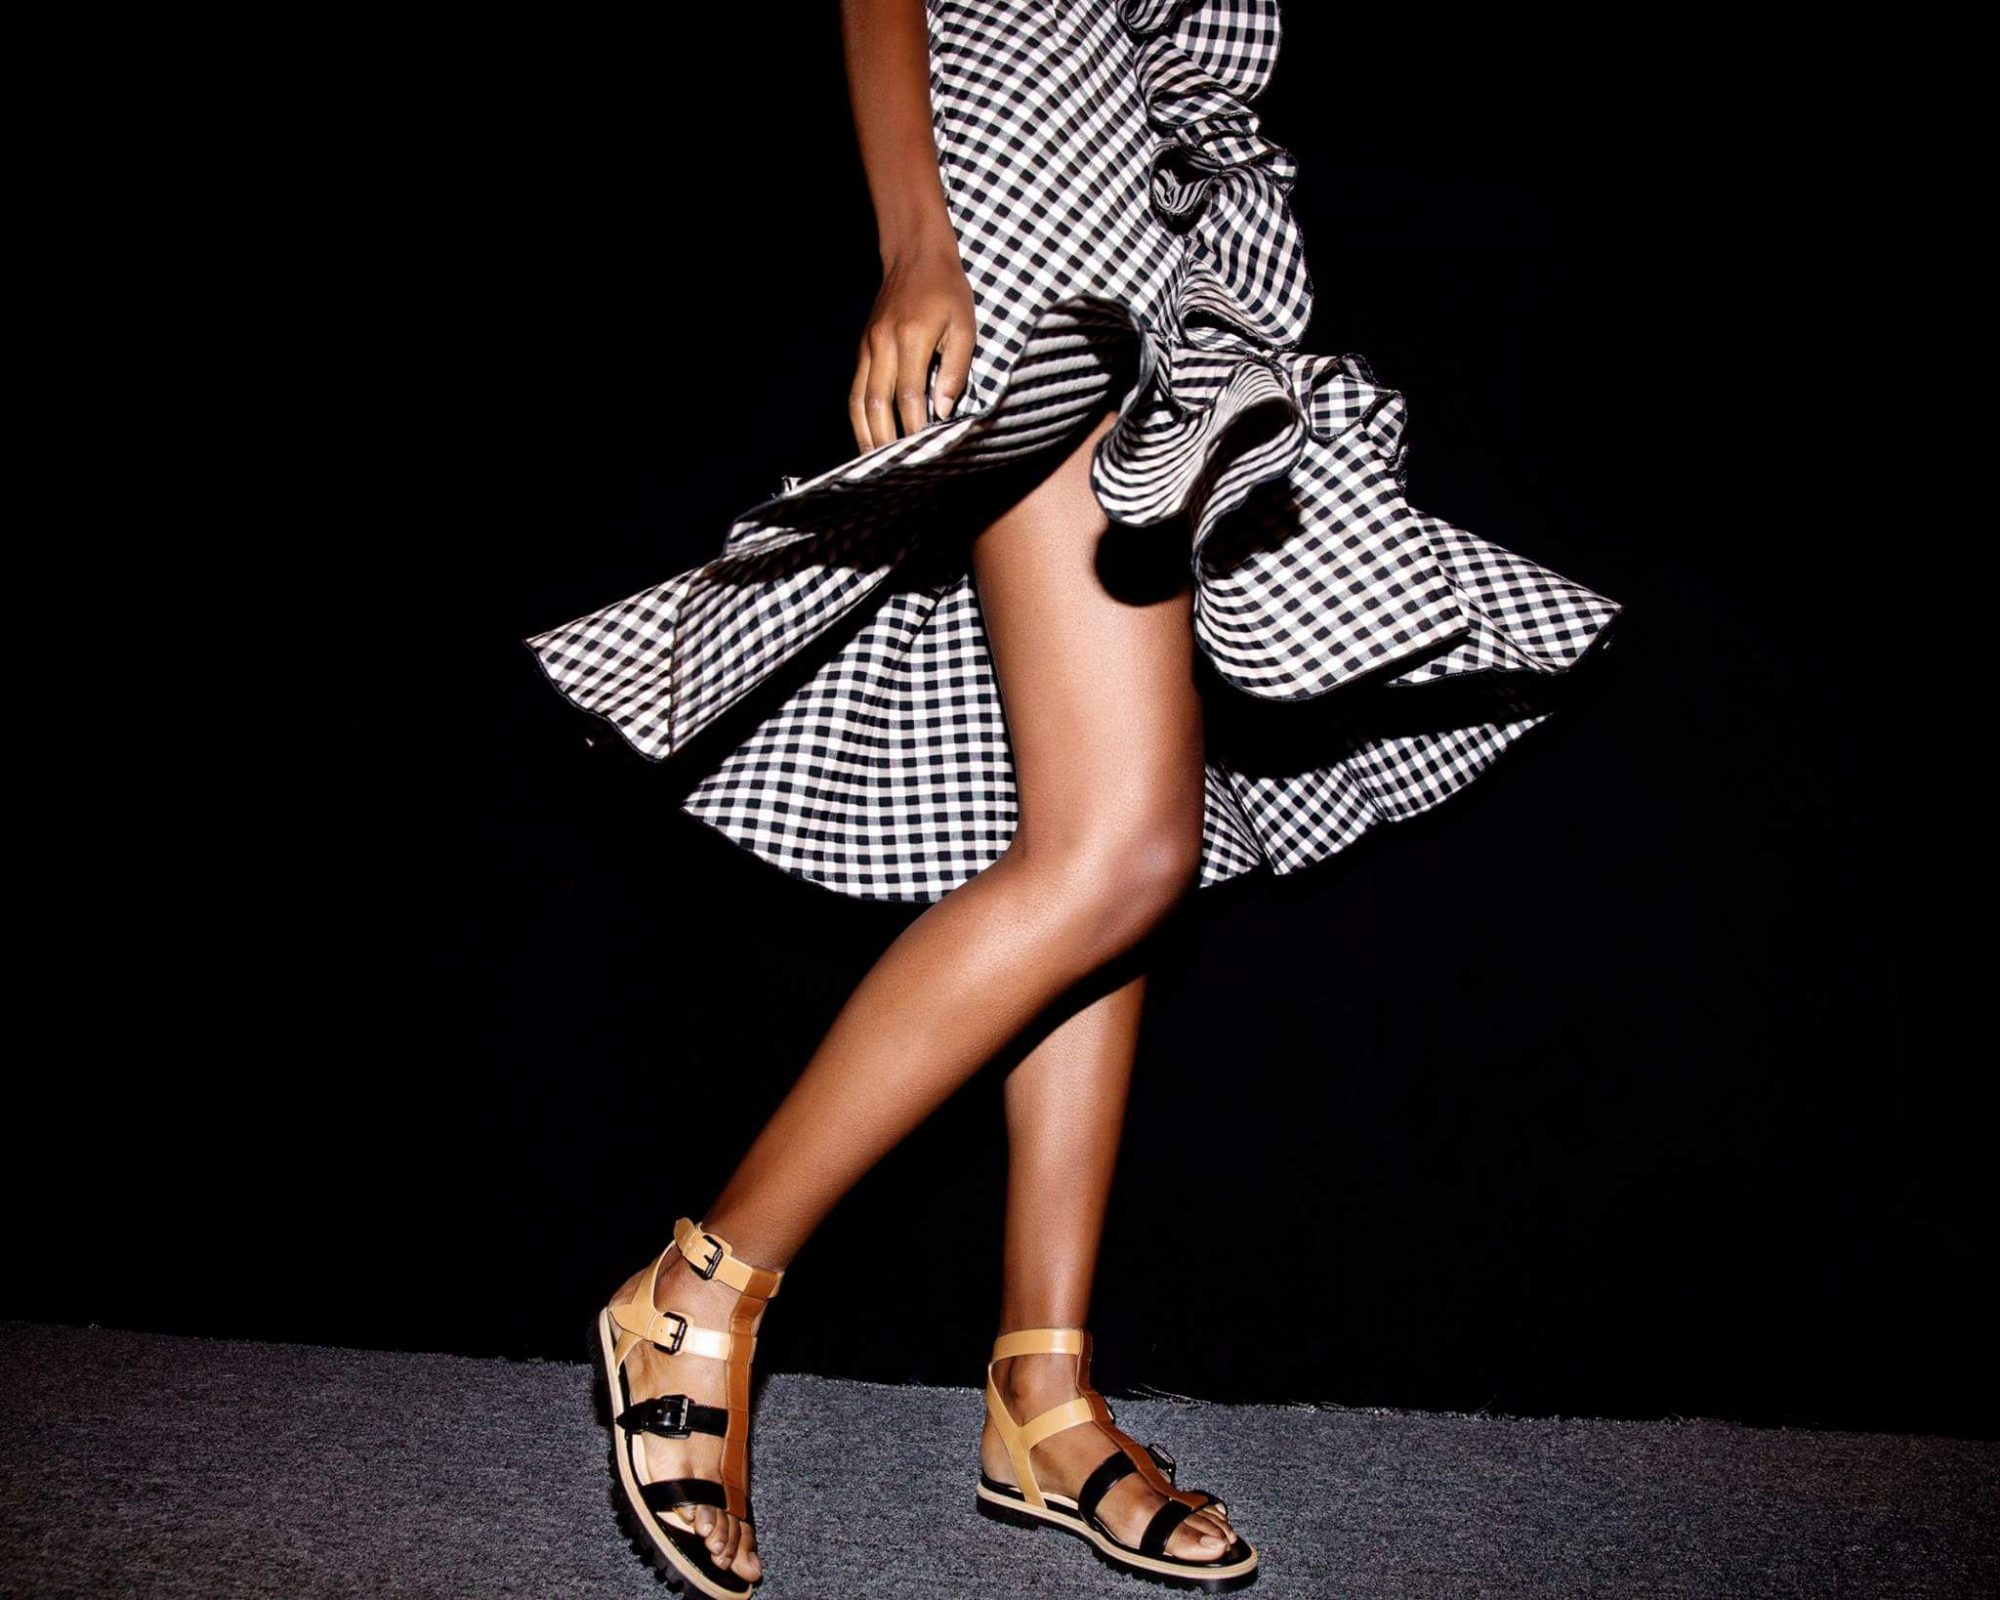 CELEBRATING THE UNIQUENESS OF WOMAN WITH CHRISTIAN LOUBOUTIN